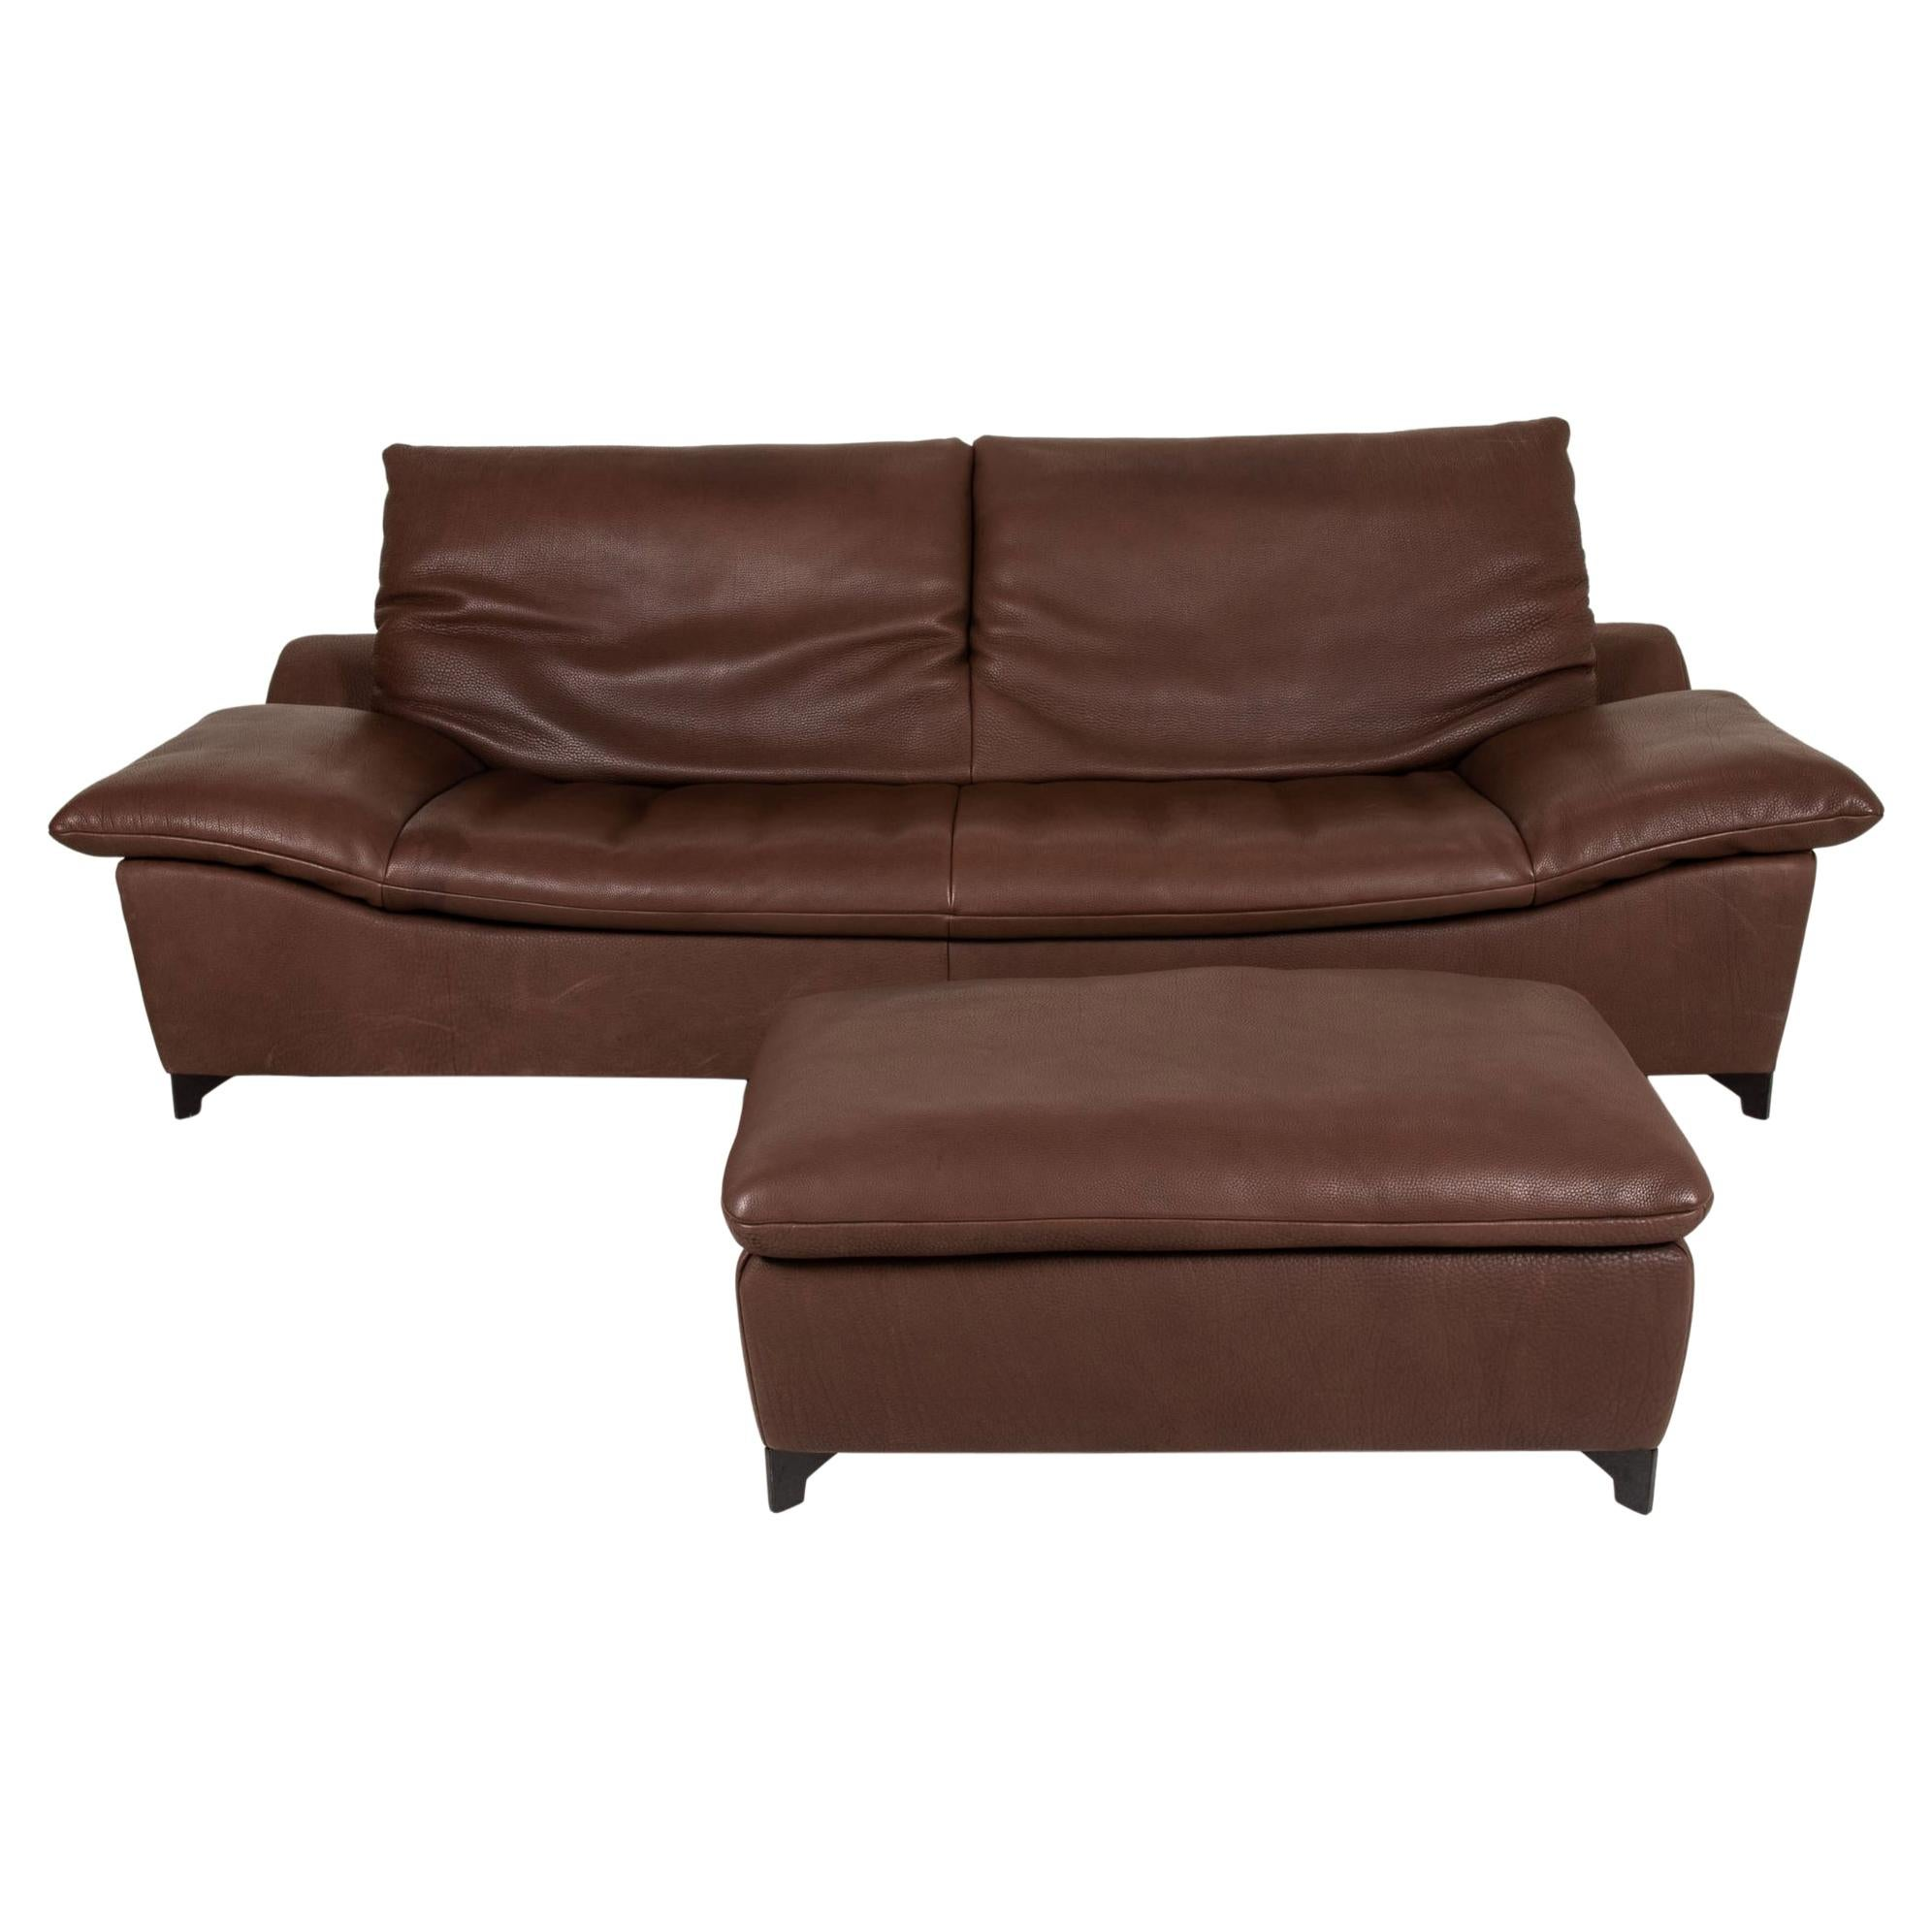 Who's Perfect Minnesota Leather Sofa Set Brown 1 Three-Seater 1 Stool Function